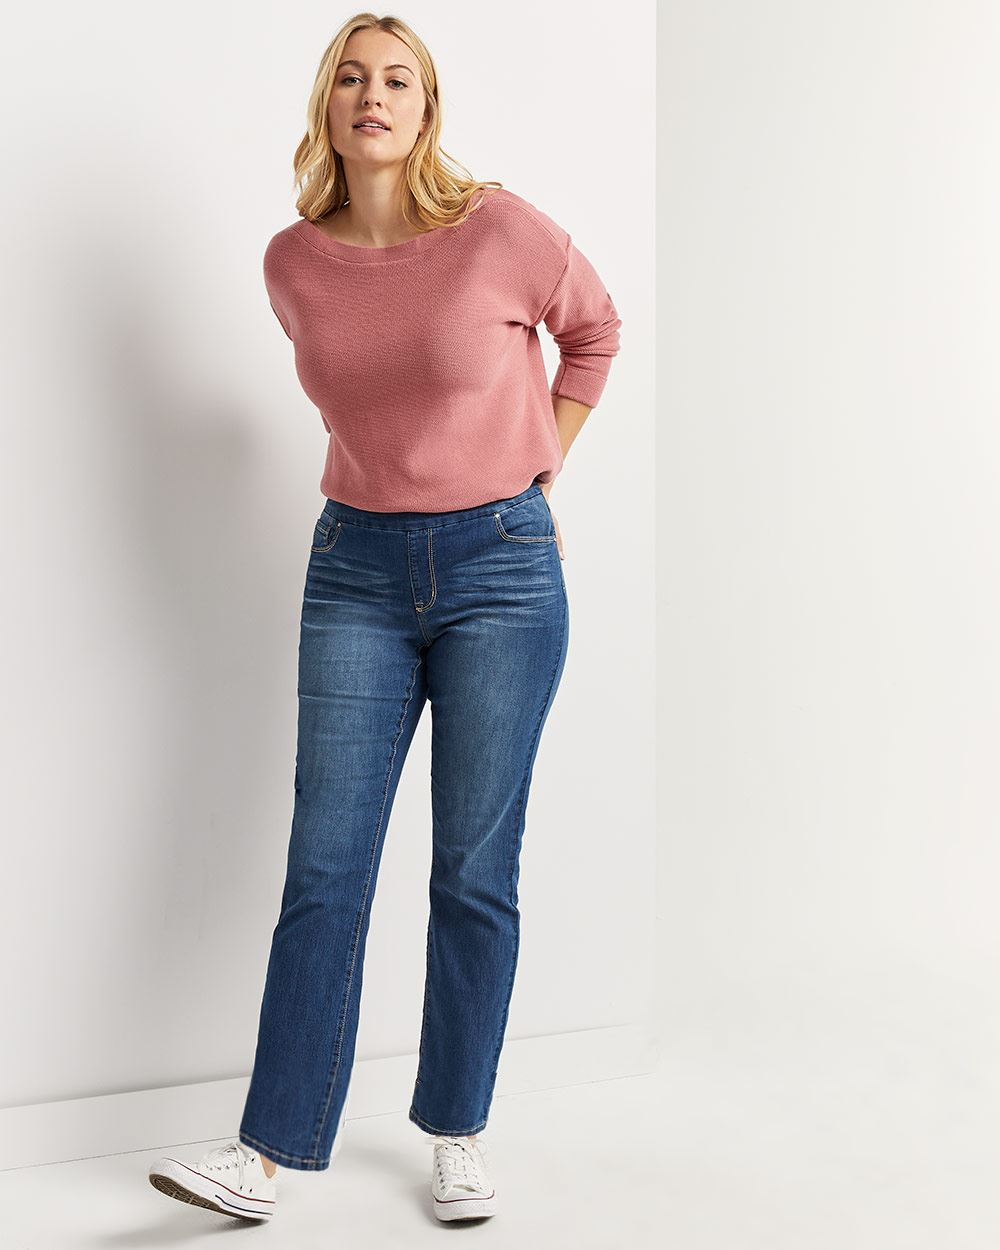 The Original Comfort Straight Leg Jeans